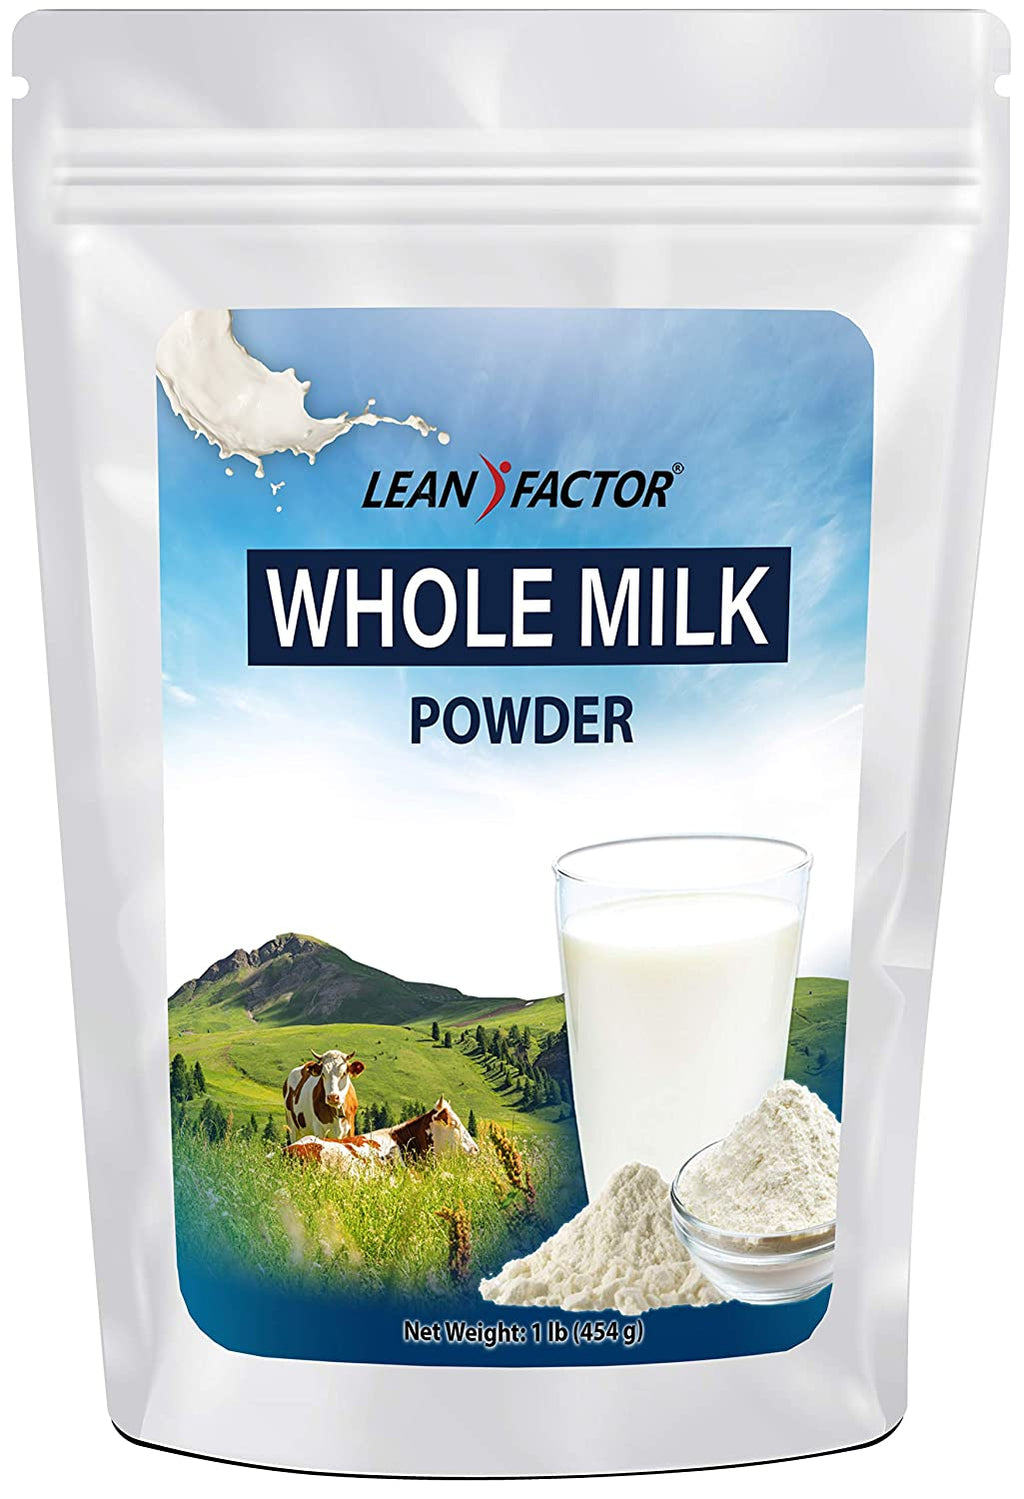 Whole Milk Powder - Dehydrated For Long Term Food Storage - Use For Cooking, Baking, Cereal, Coffee & Tea - Great For Adults & Kids - Non GMO & Gluten Free Shelf Stable Dried Milk - 1 lb - Ufumbuzi - Home